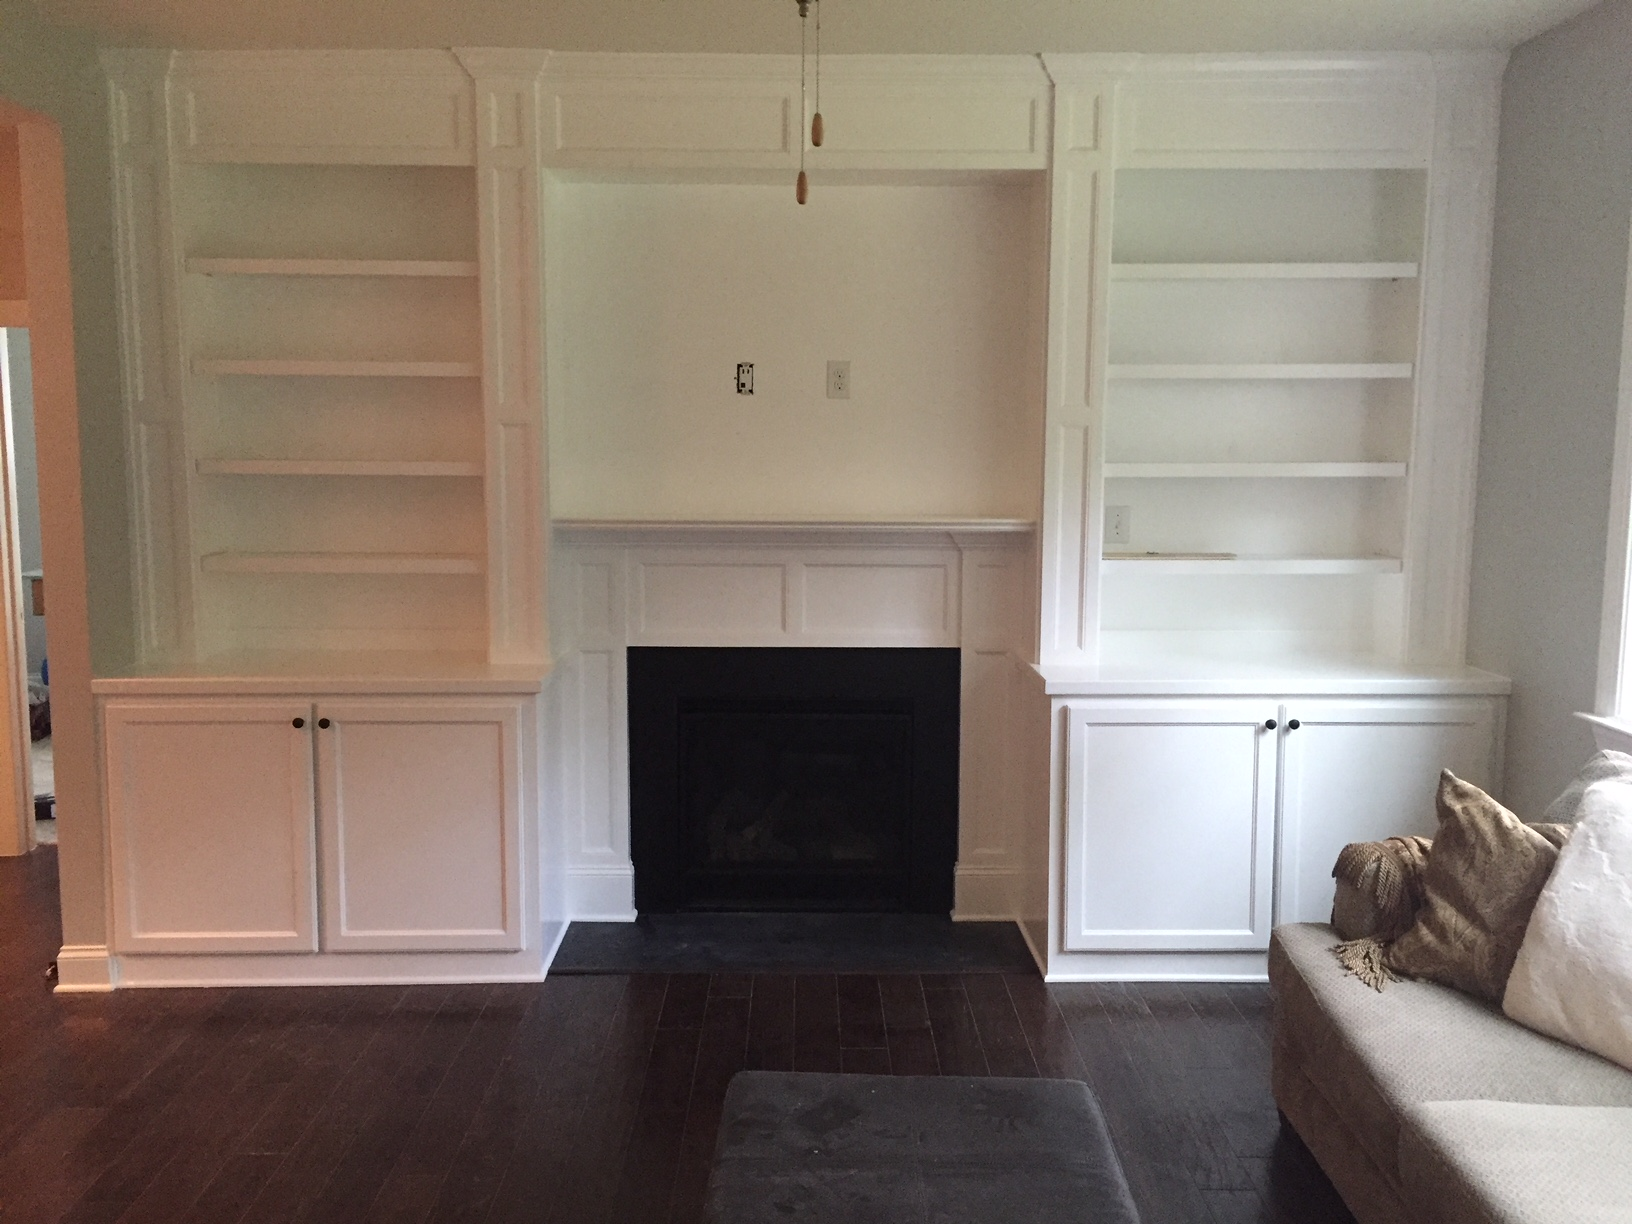 Fireplace Built-Ins with Adjustable Shelves, Header & Applied Panel Detail, Columns, Shaker Panels, Shaker Doors, and Crown